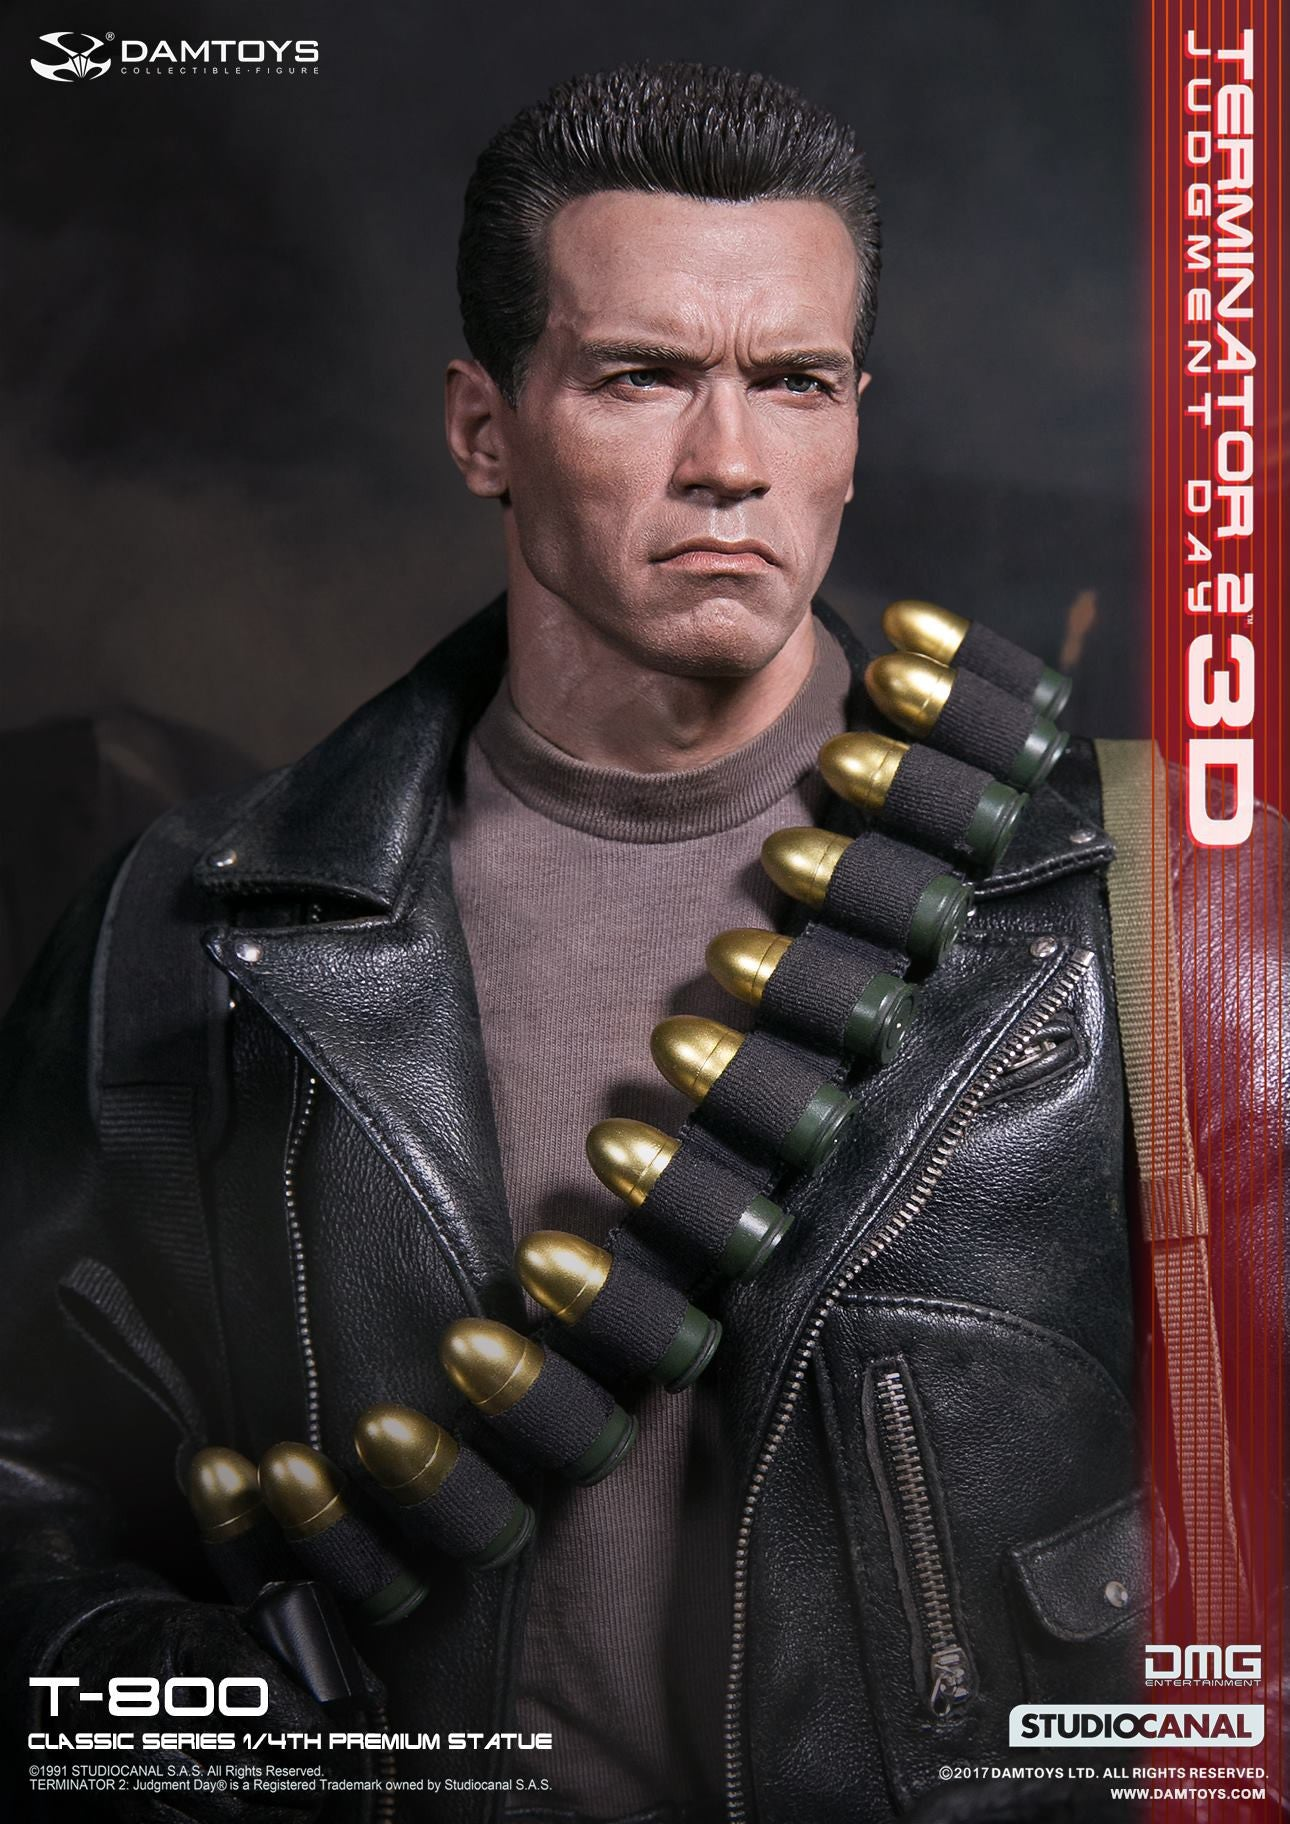 Damtoys - Classic Series - Terminator 2: Judgment Day - T-800 1/4th Scale Premium Statue